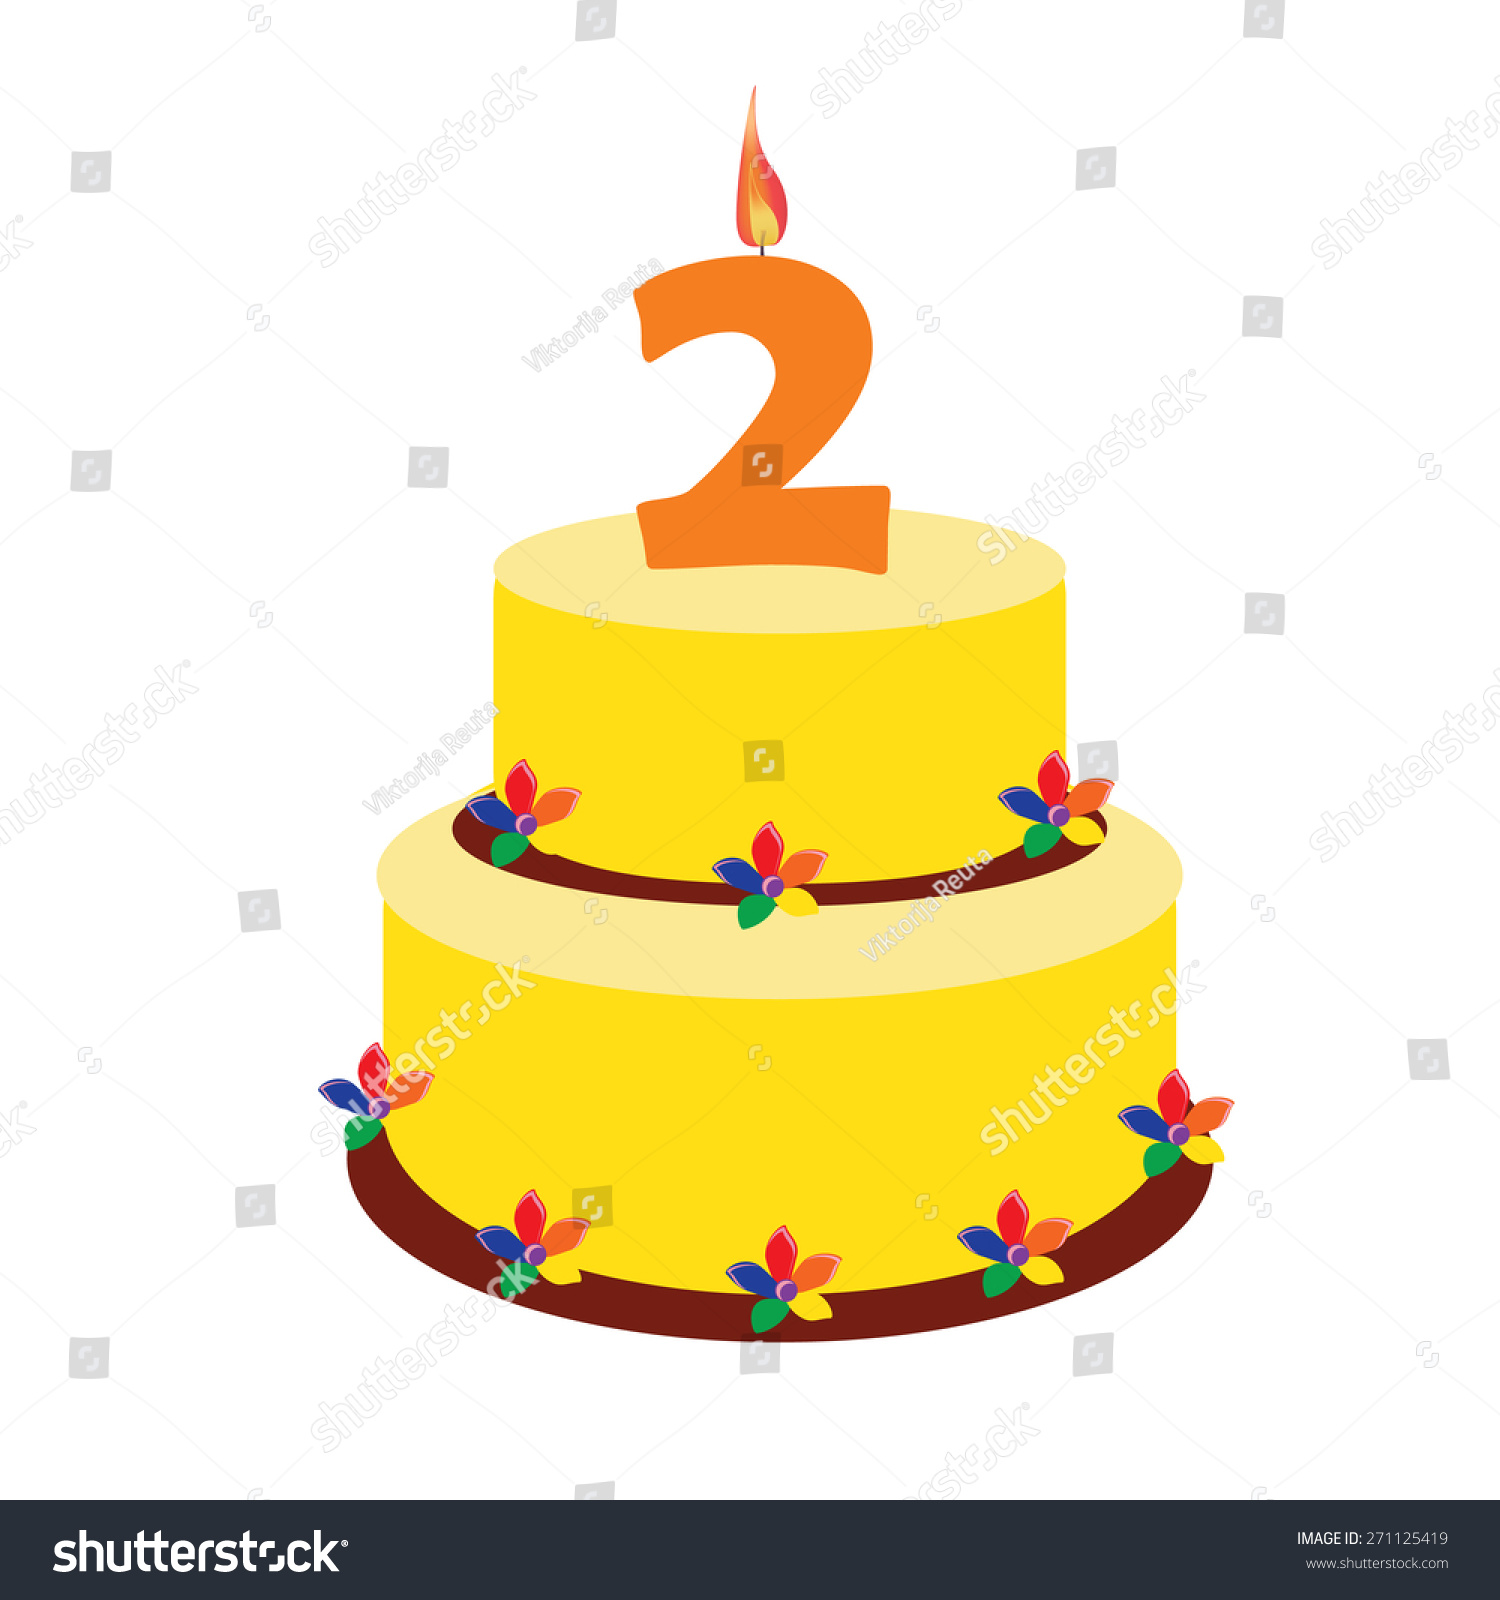 Birthday Cake Two Years Second Birthday Stock Vector Royalty Free